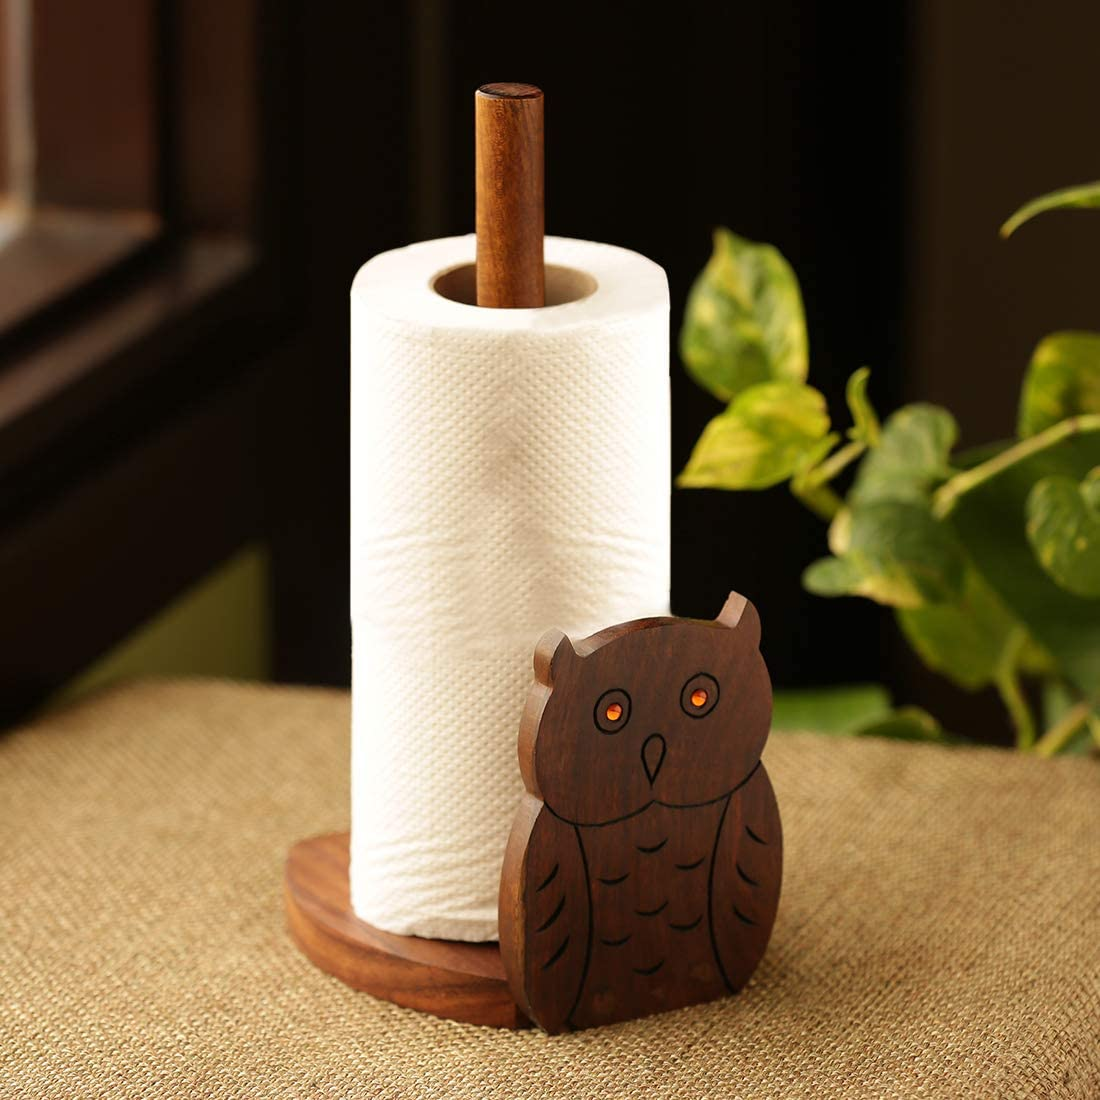 Bombing free shipping Kansas City Mall ExclusiveLane 'Owl 'n' Roll' Paper With Hand Holder Roll Napkin